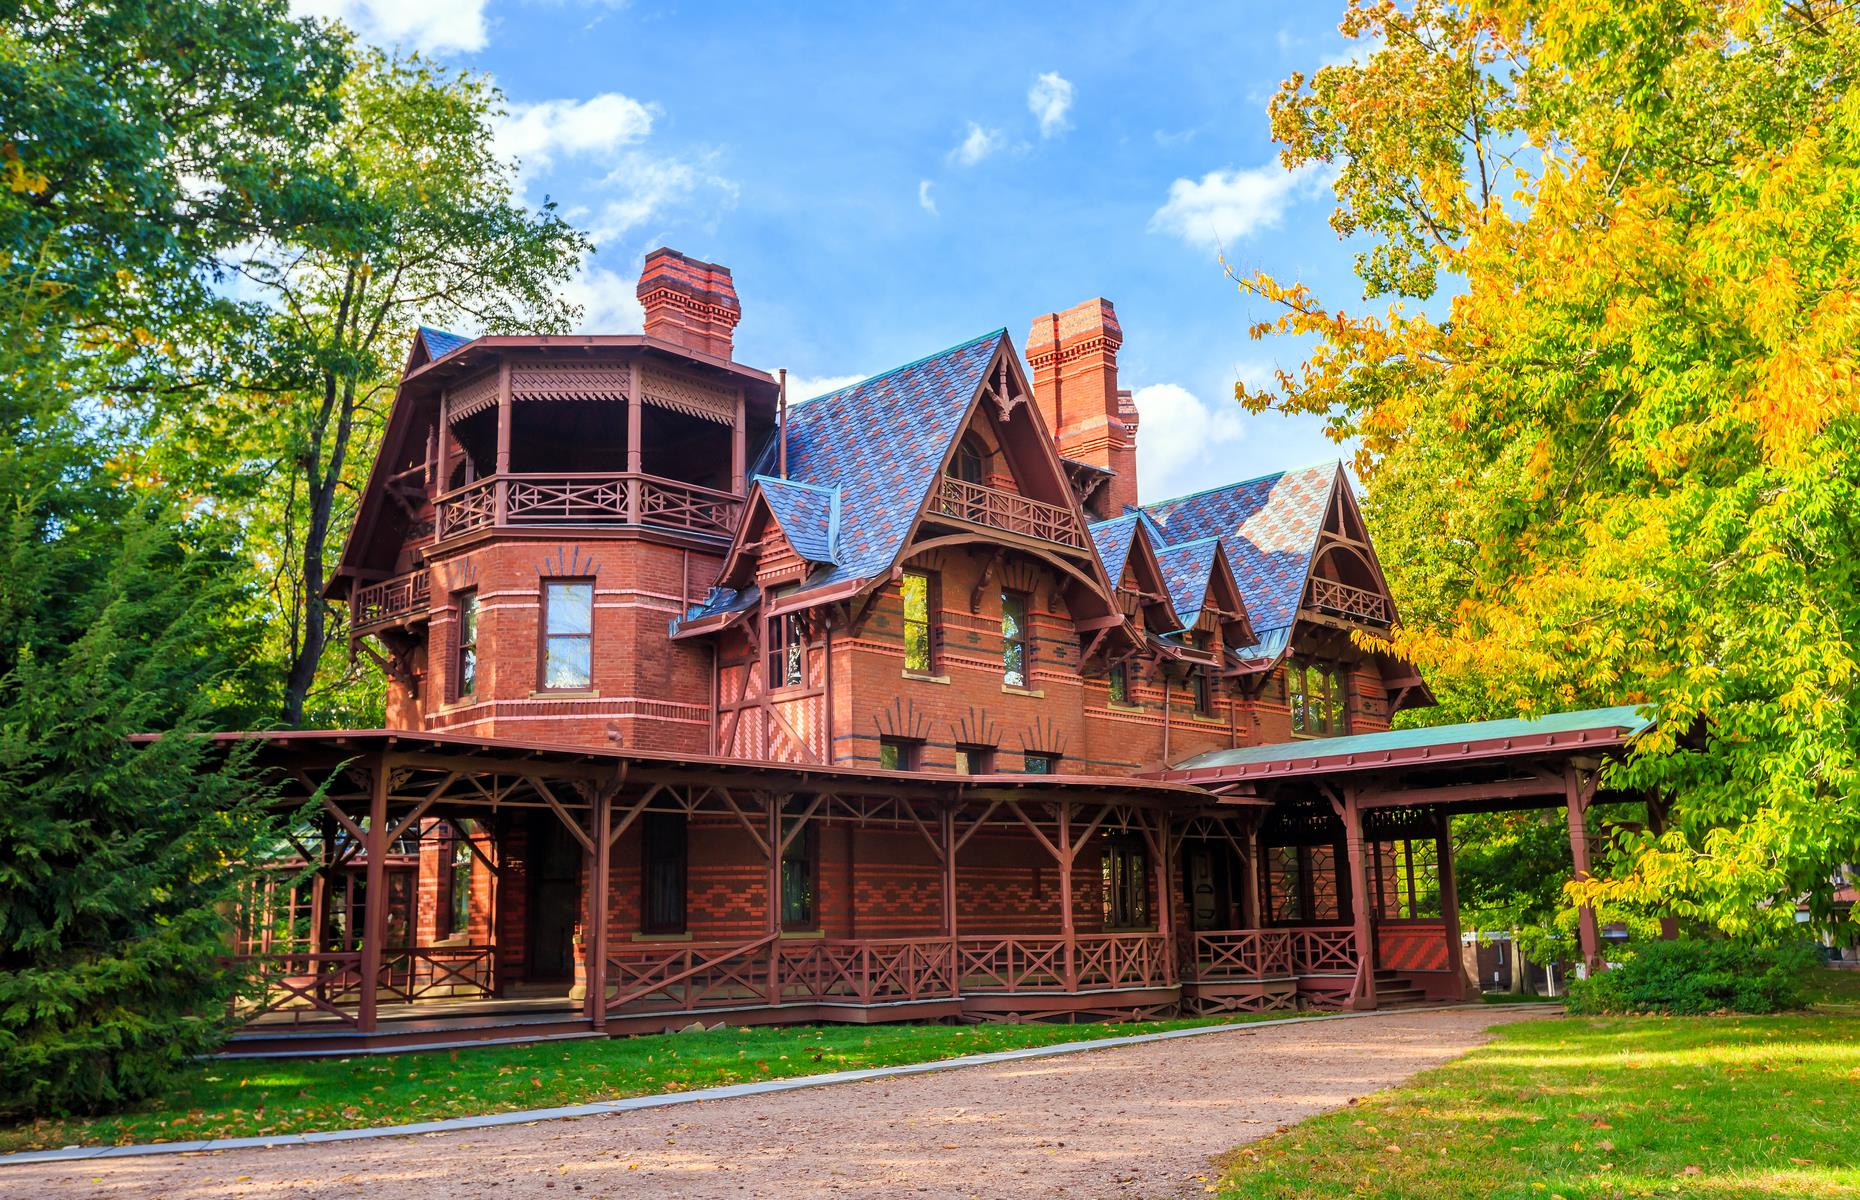 Slide 31 of 31: This house in Hartford had a famous owner, the iconic American writer Mark Twain, akaSamuel Langhorne Clemons, who had it built in the late 1800s. The 11,500-square-foot (1,068sqm) American High Gothic-style house was designed by architect Edward Tuckerman Potter and ended up being an expensive project wrought with delays. That didn't dampen Twain's creativity though, as while living herehe wrote the classics The Adventures of Tom Sawyer and Adventures of Huckleberry Finn, among others. Discover more of America's most important landmarks